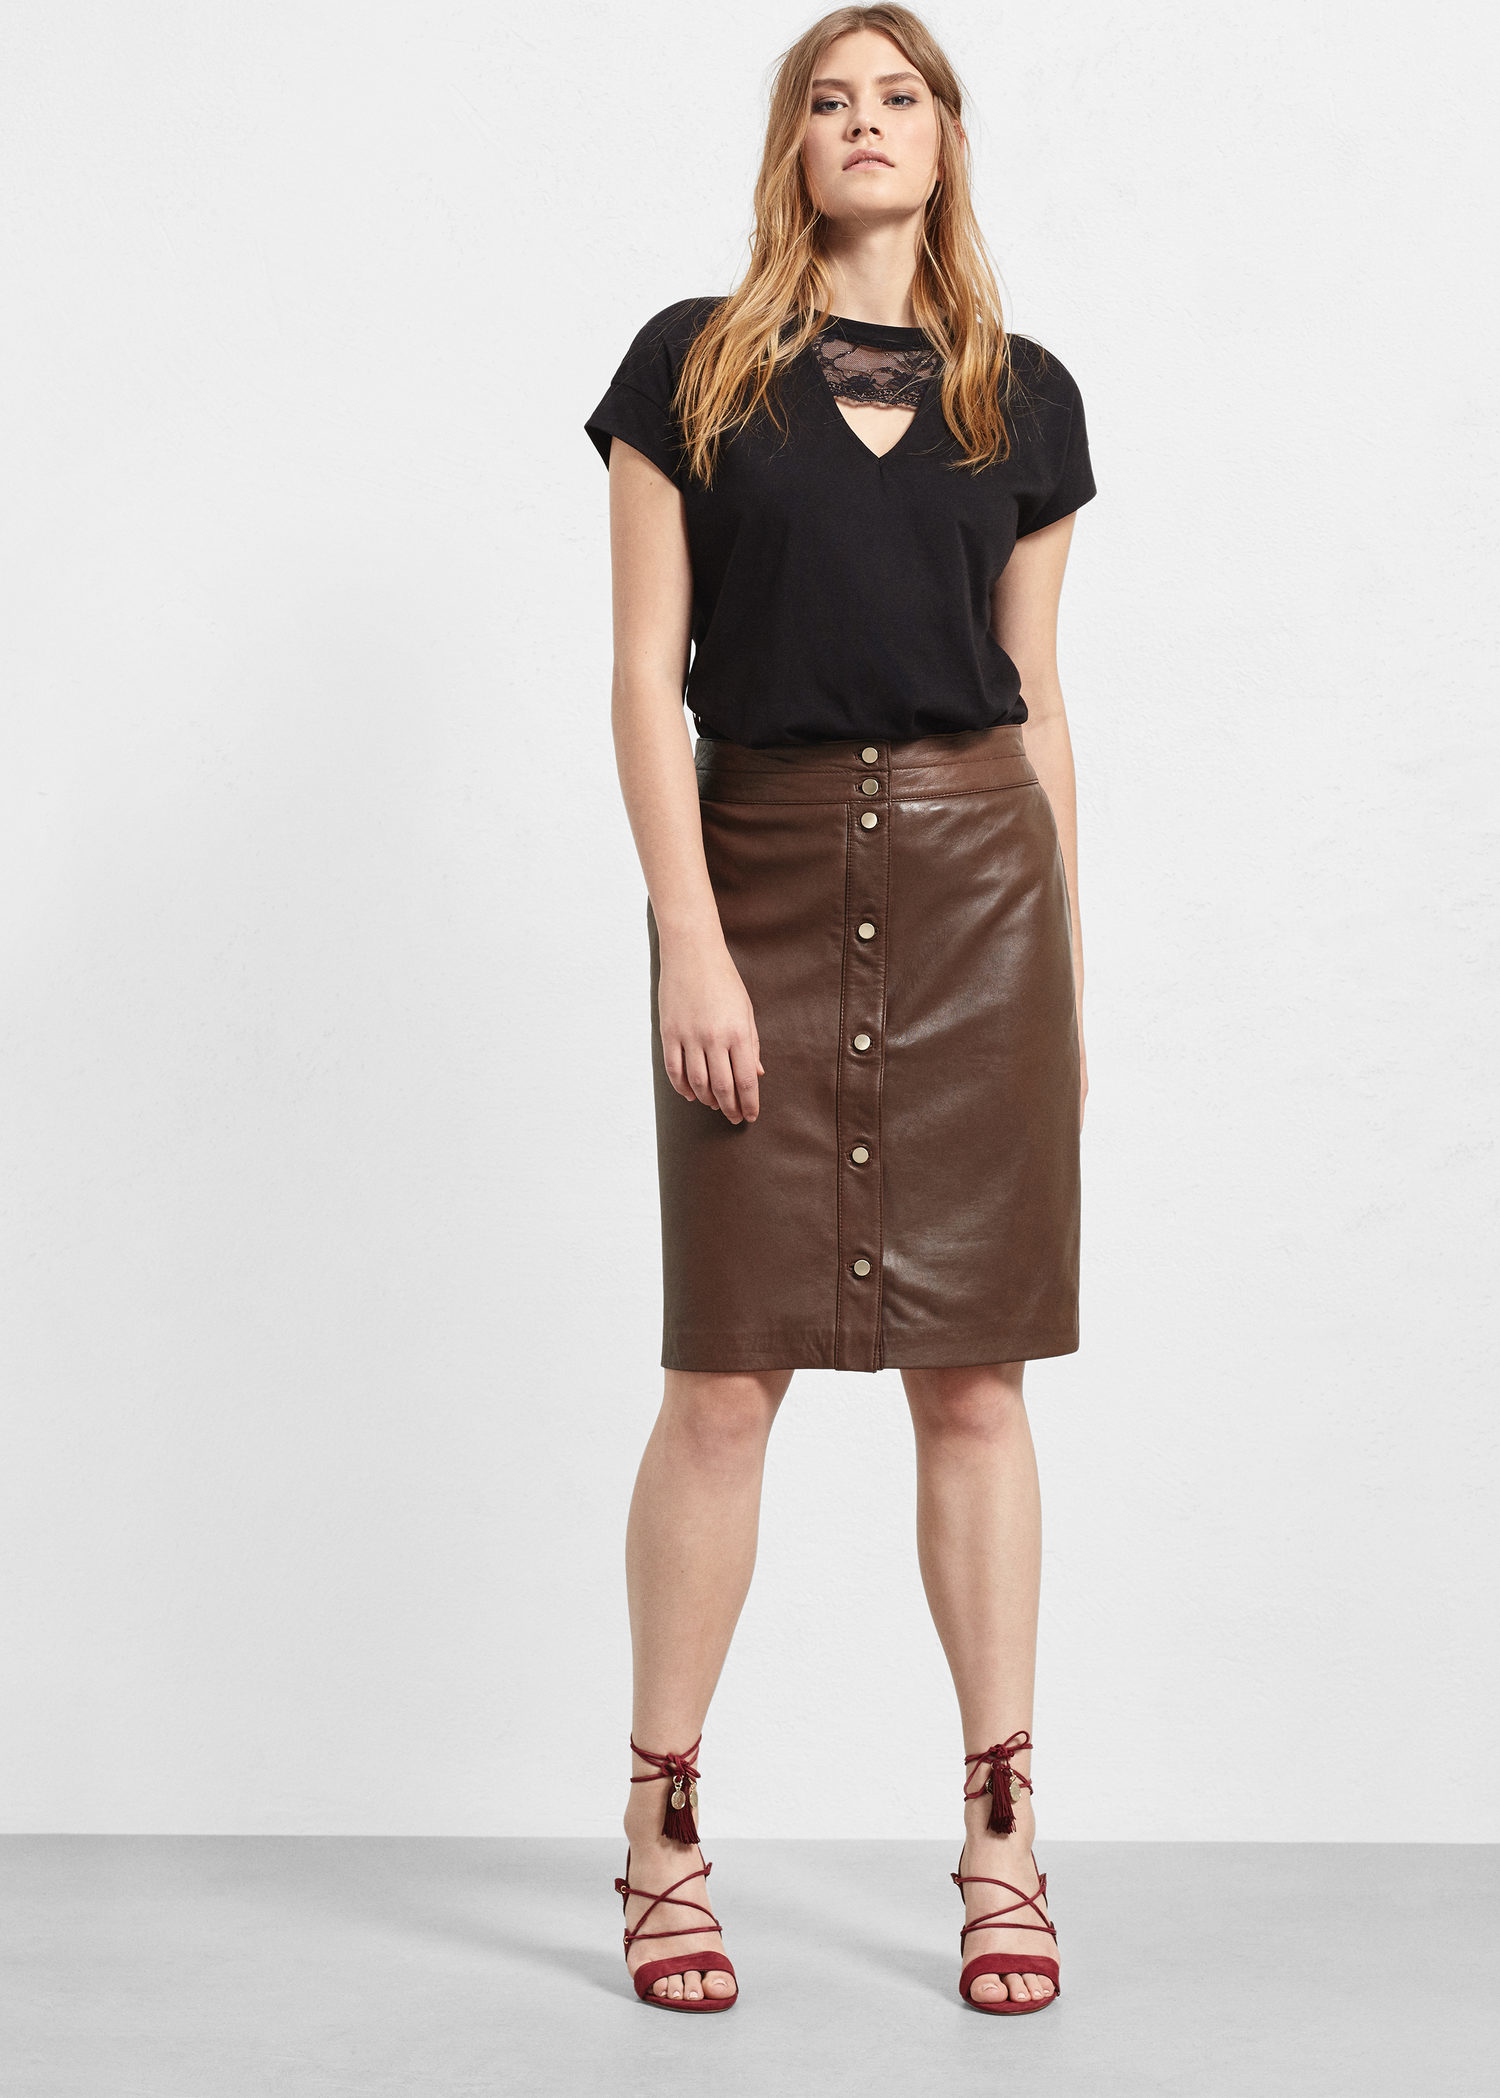 Violeta by mango Leather Skirt in Brown | Lyst